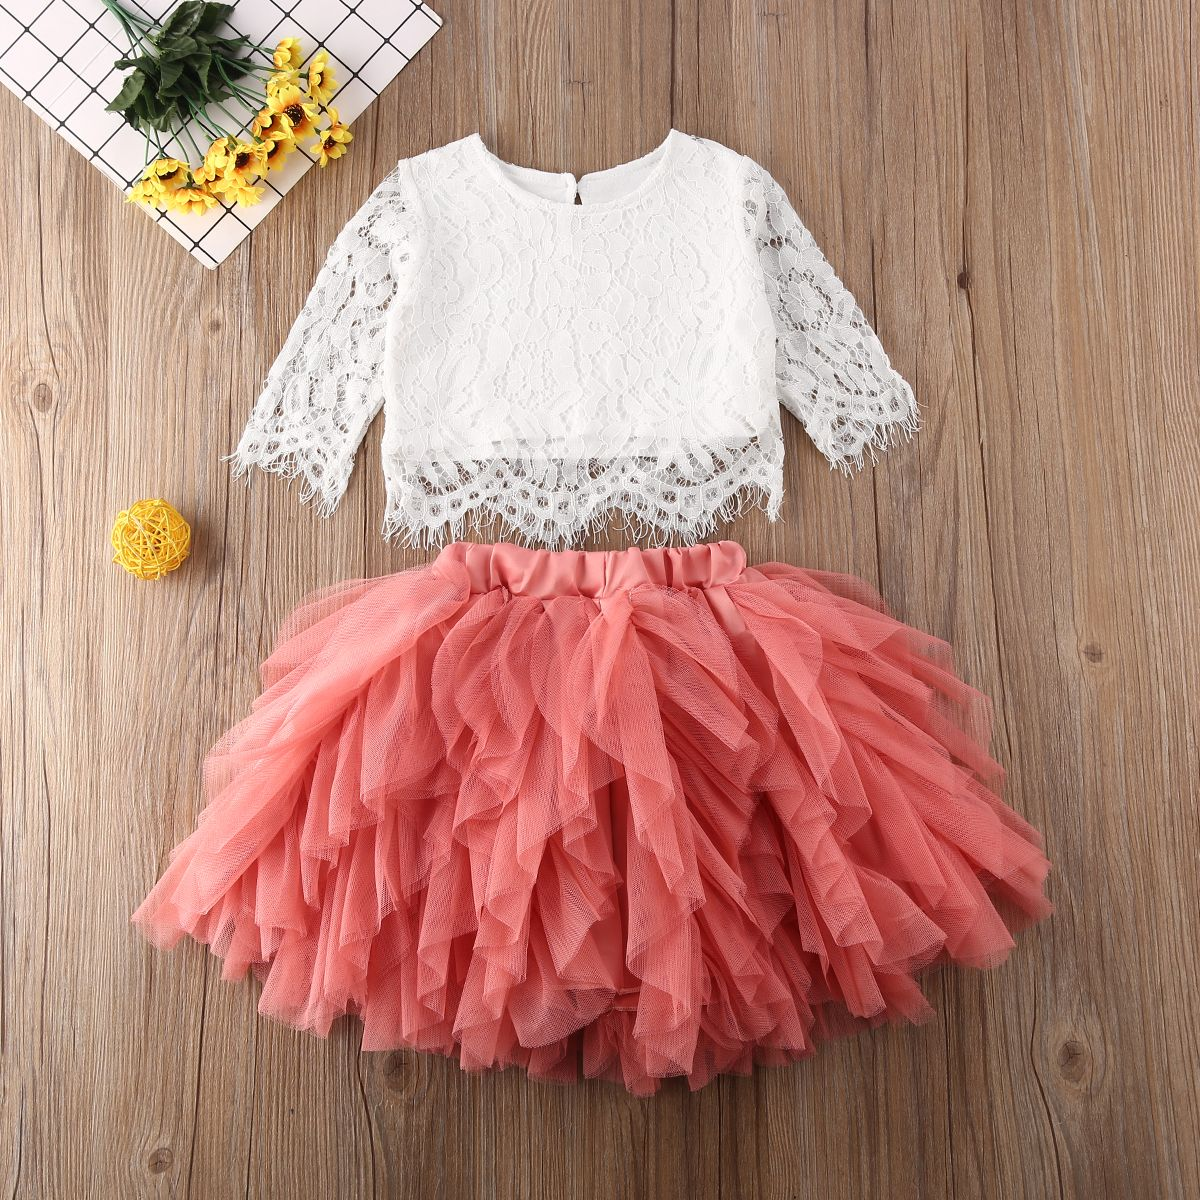 Kids Baby Girl T-shirt Tops+Tutu Skirt Party Clothes Toddler Casual Floral Dress